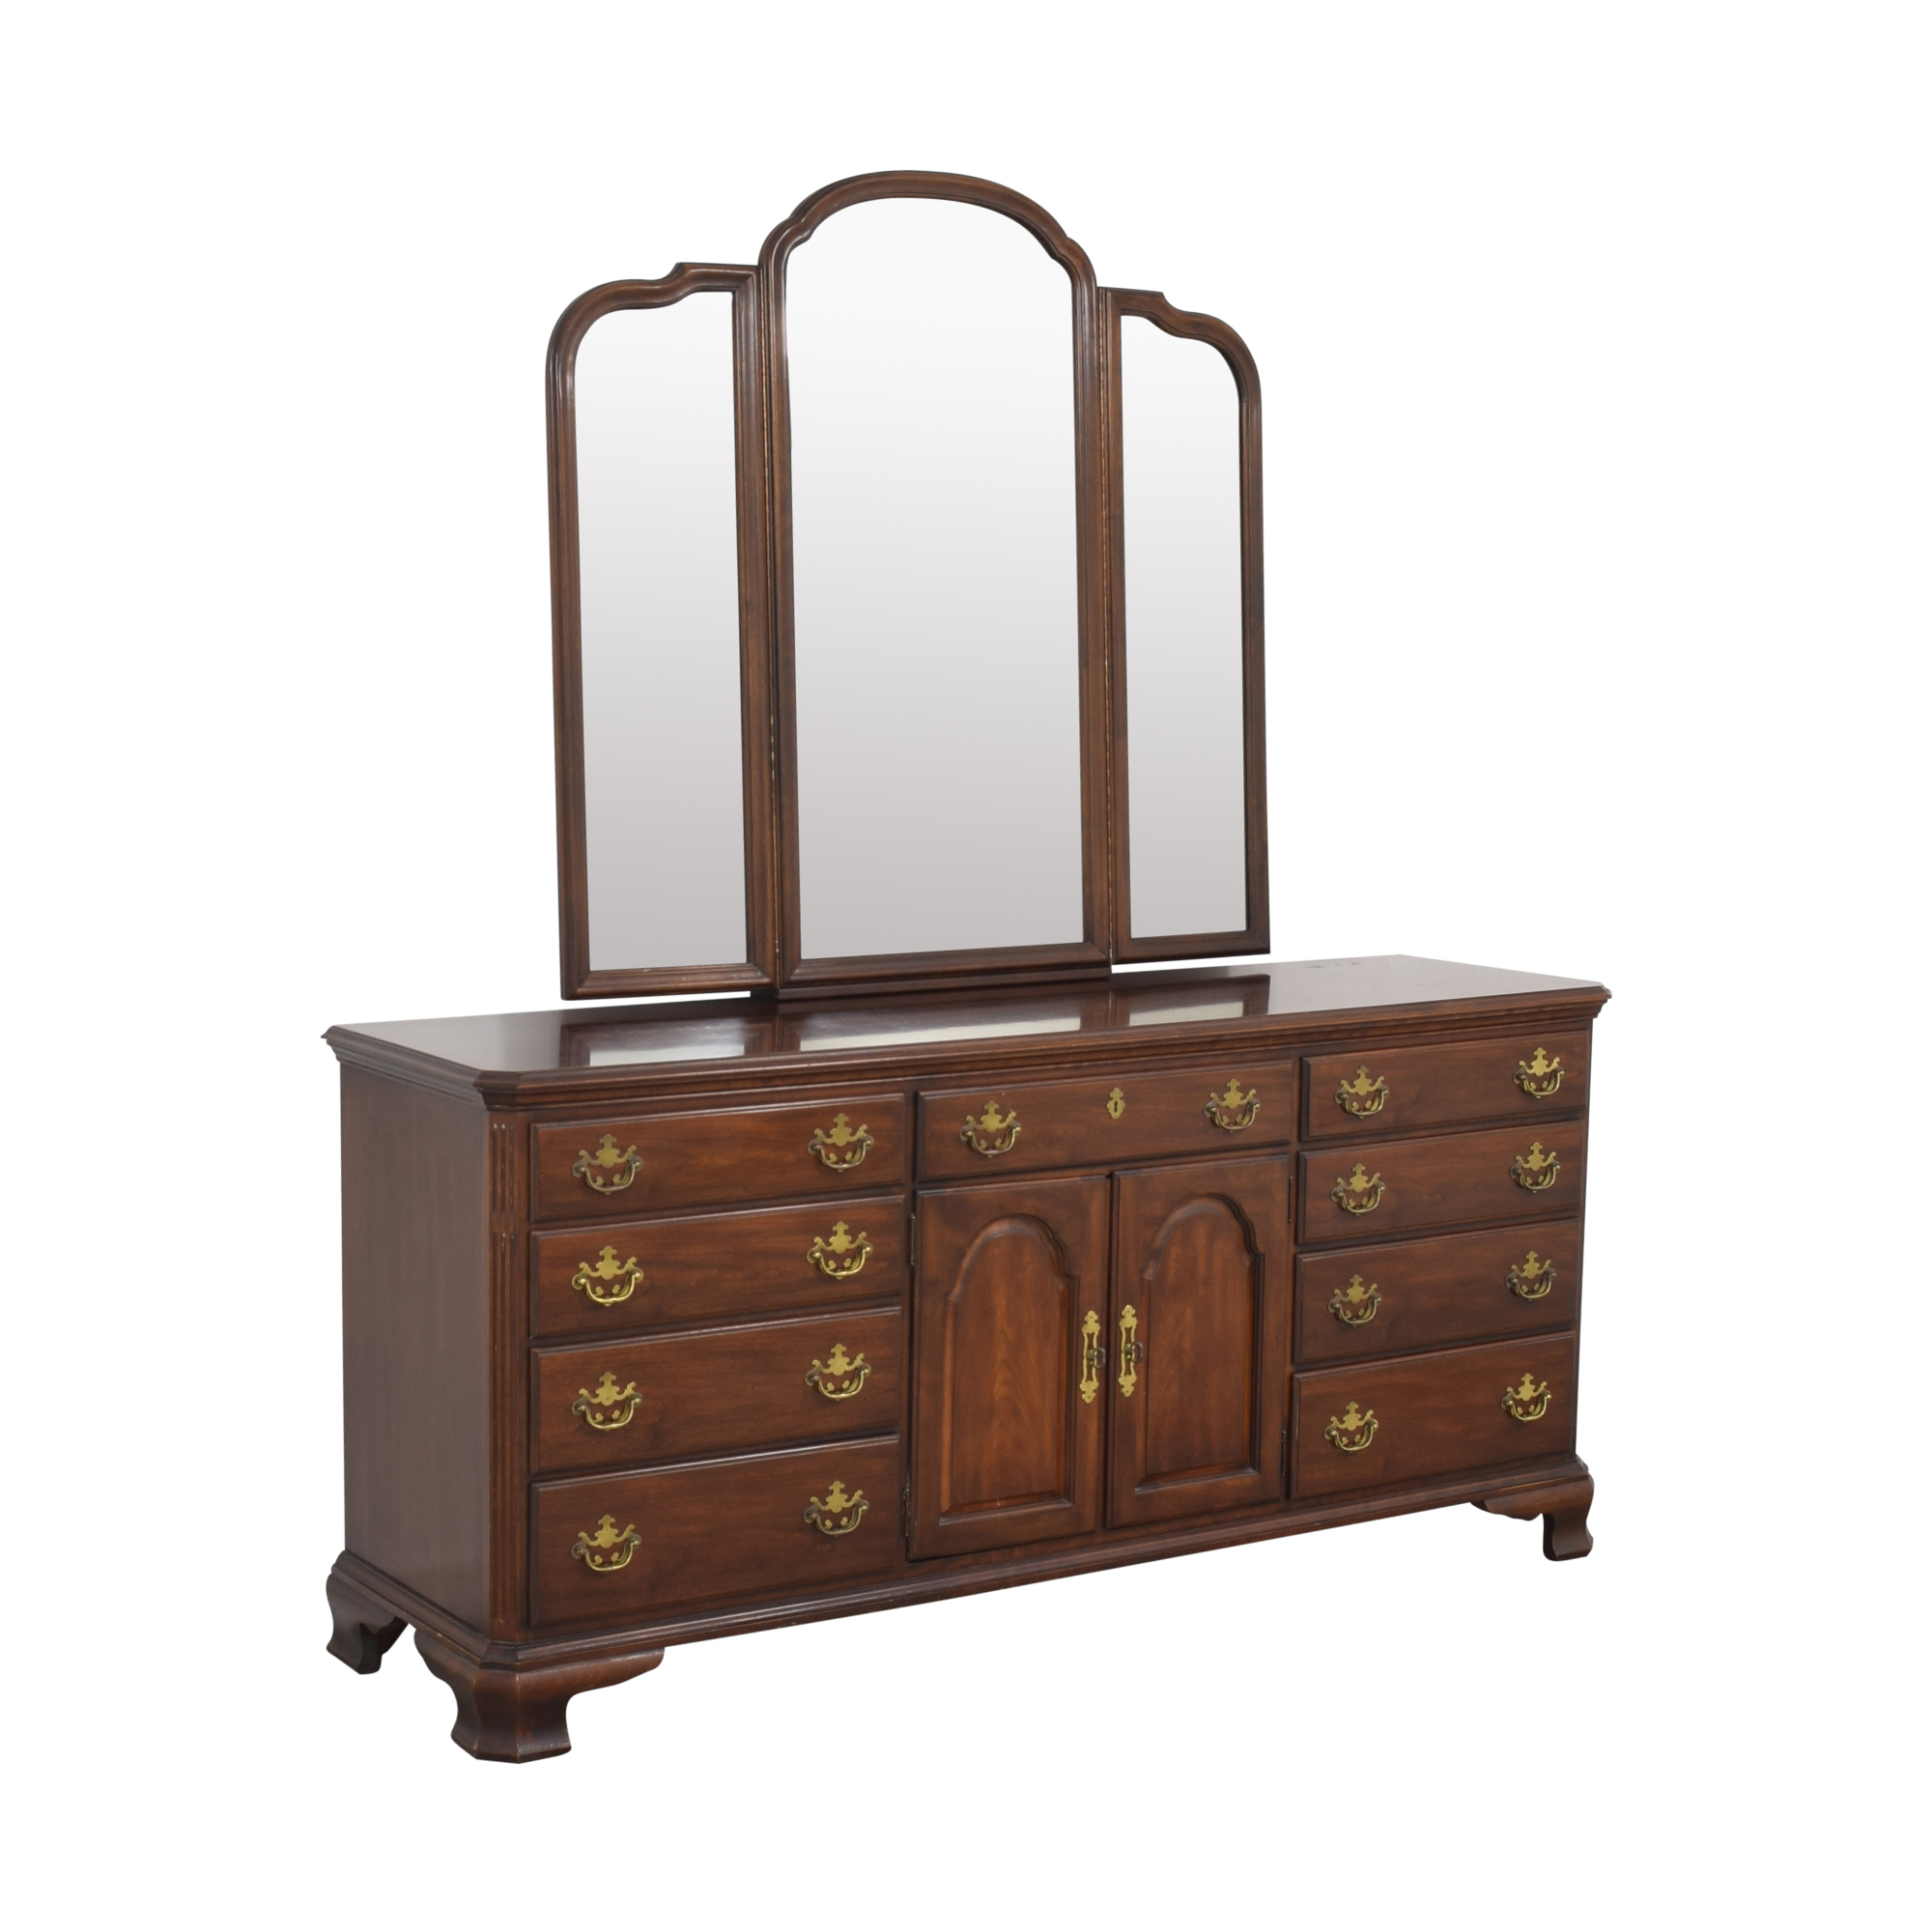 shop Drexel Drexel Triple Dresser with Trifold Mirror online